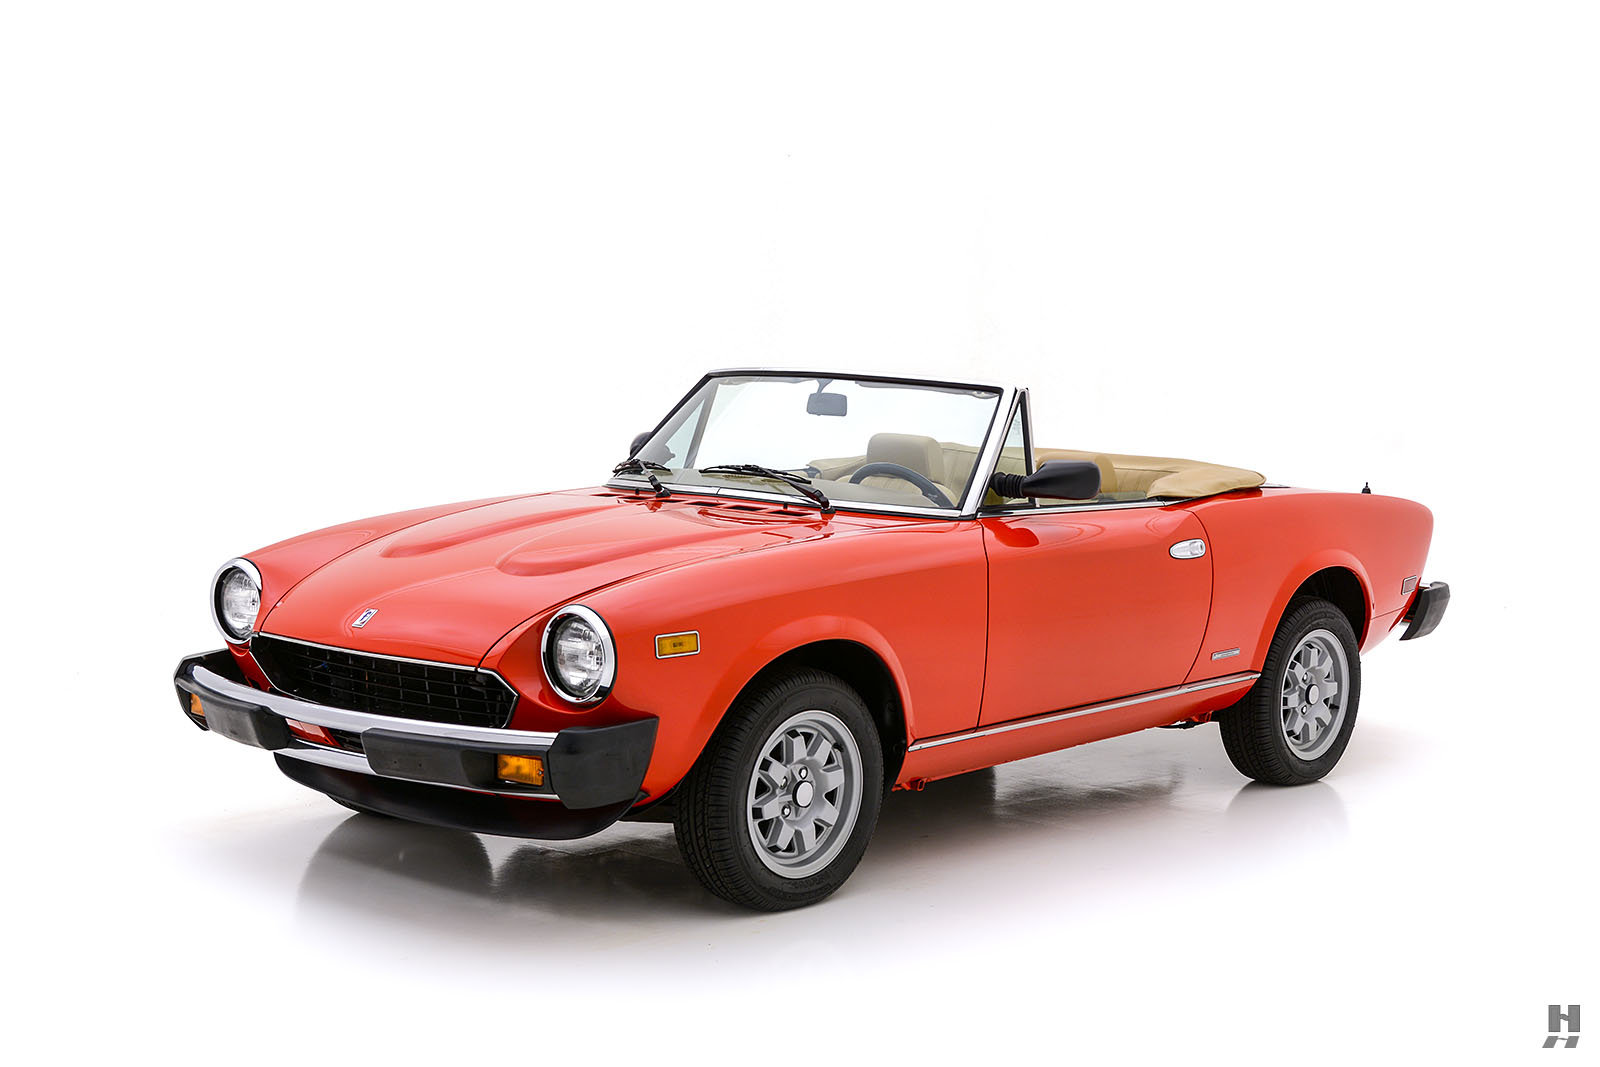 1984 PININFARINA SPIDER AZZURRA CABRIOLET For Sale (picture 1 of 6)